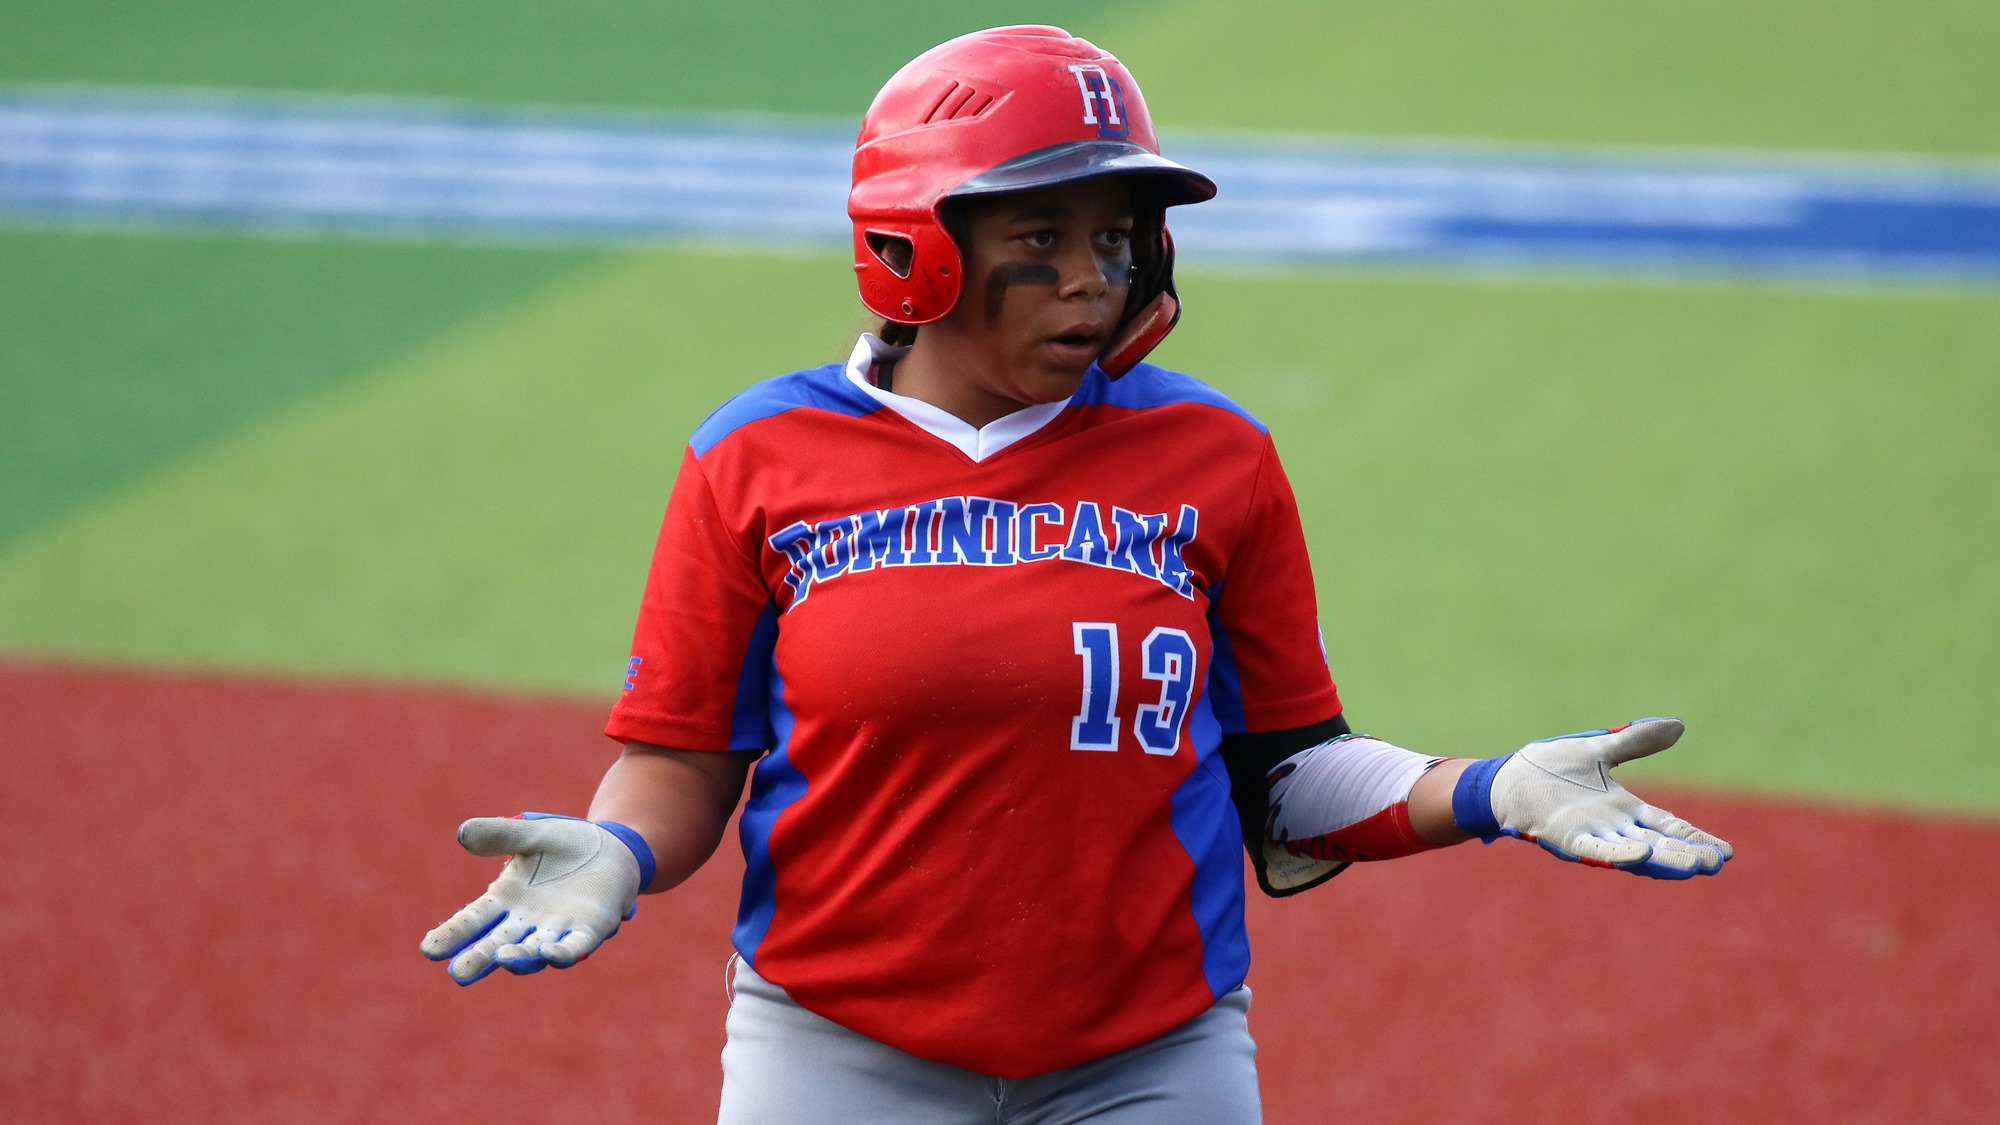 Melissa Rodriguez expresses the disappointment of the Dominican Republic